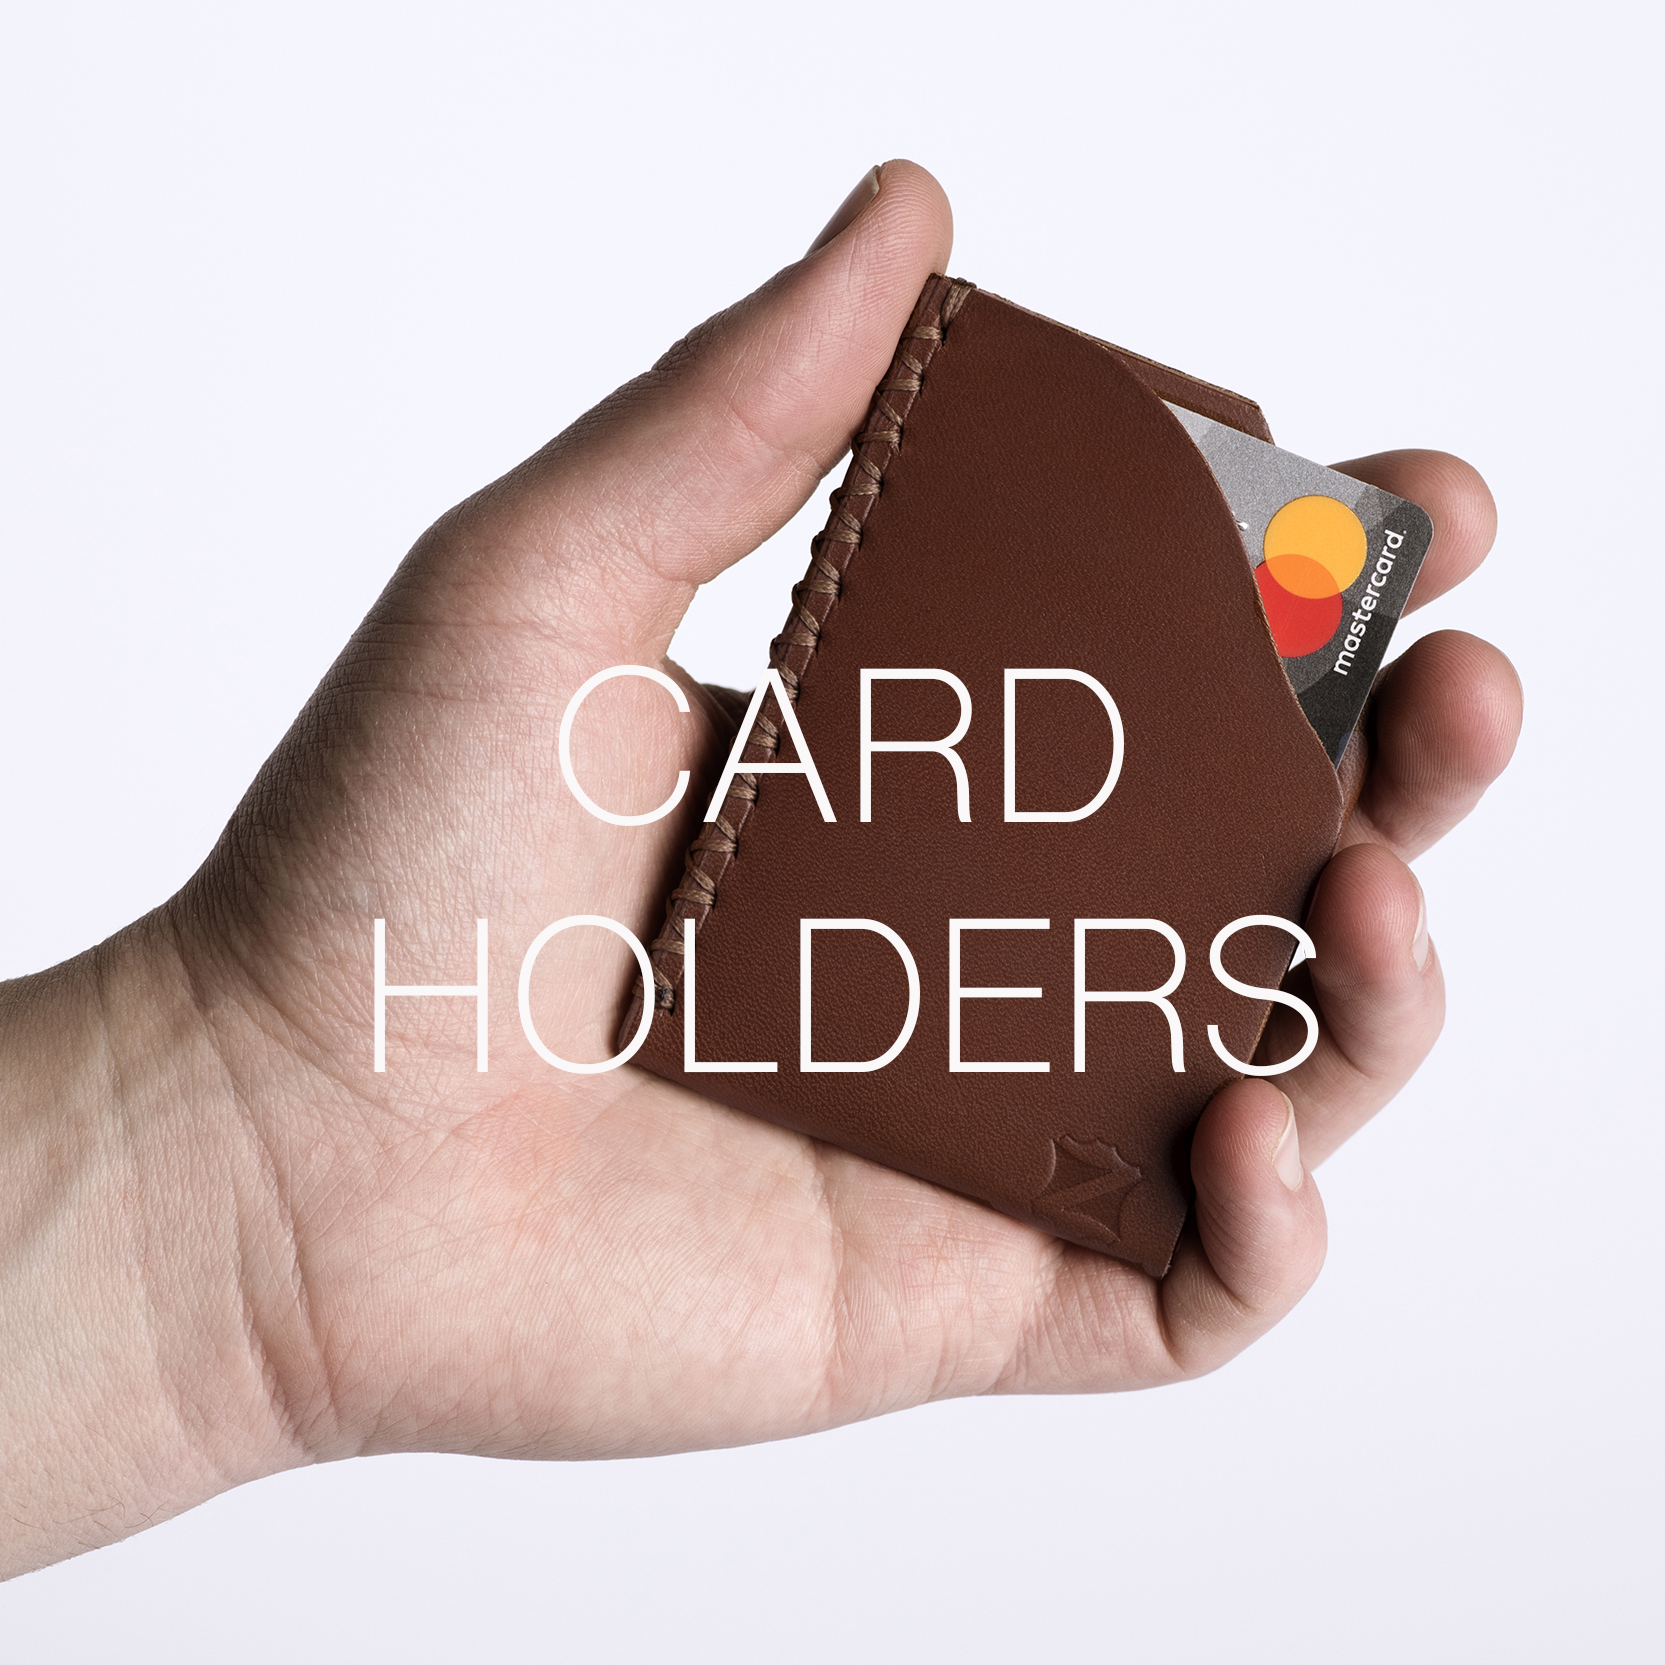 Handmade Card Holders | Zaccardelli Leather Co | Handmade Leather Goods